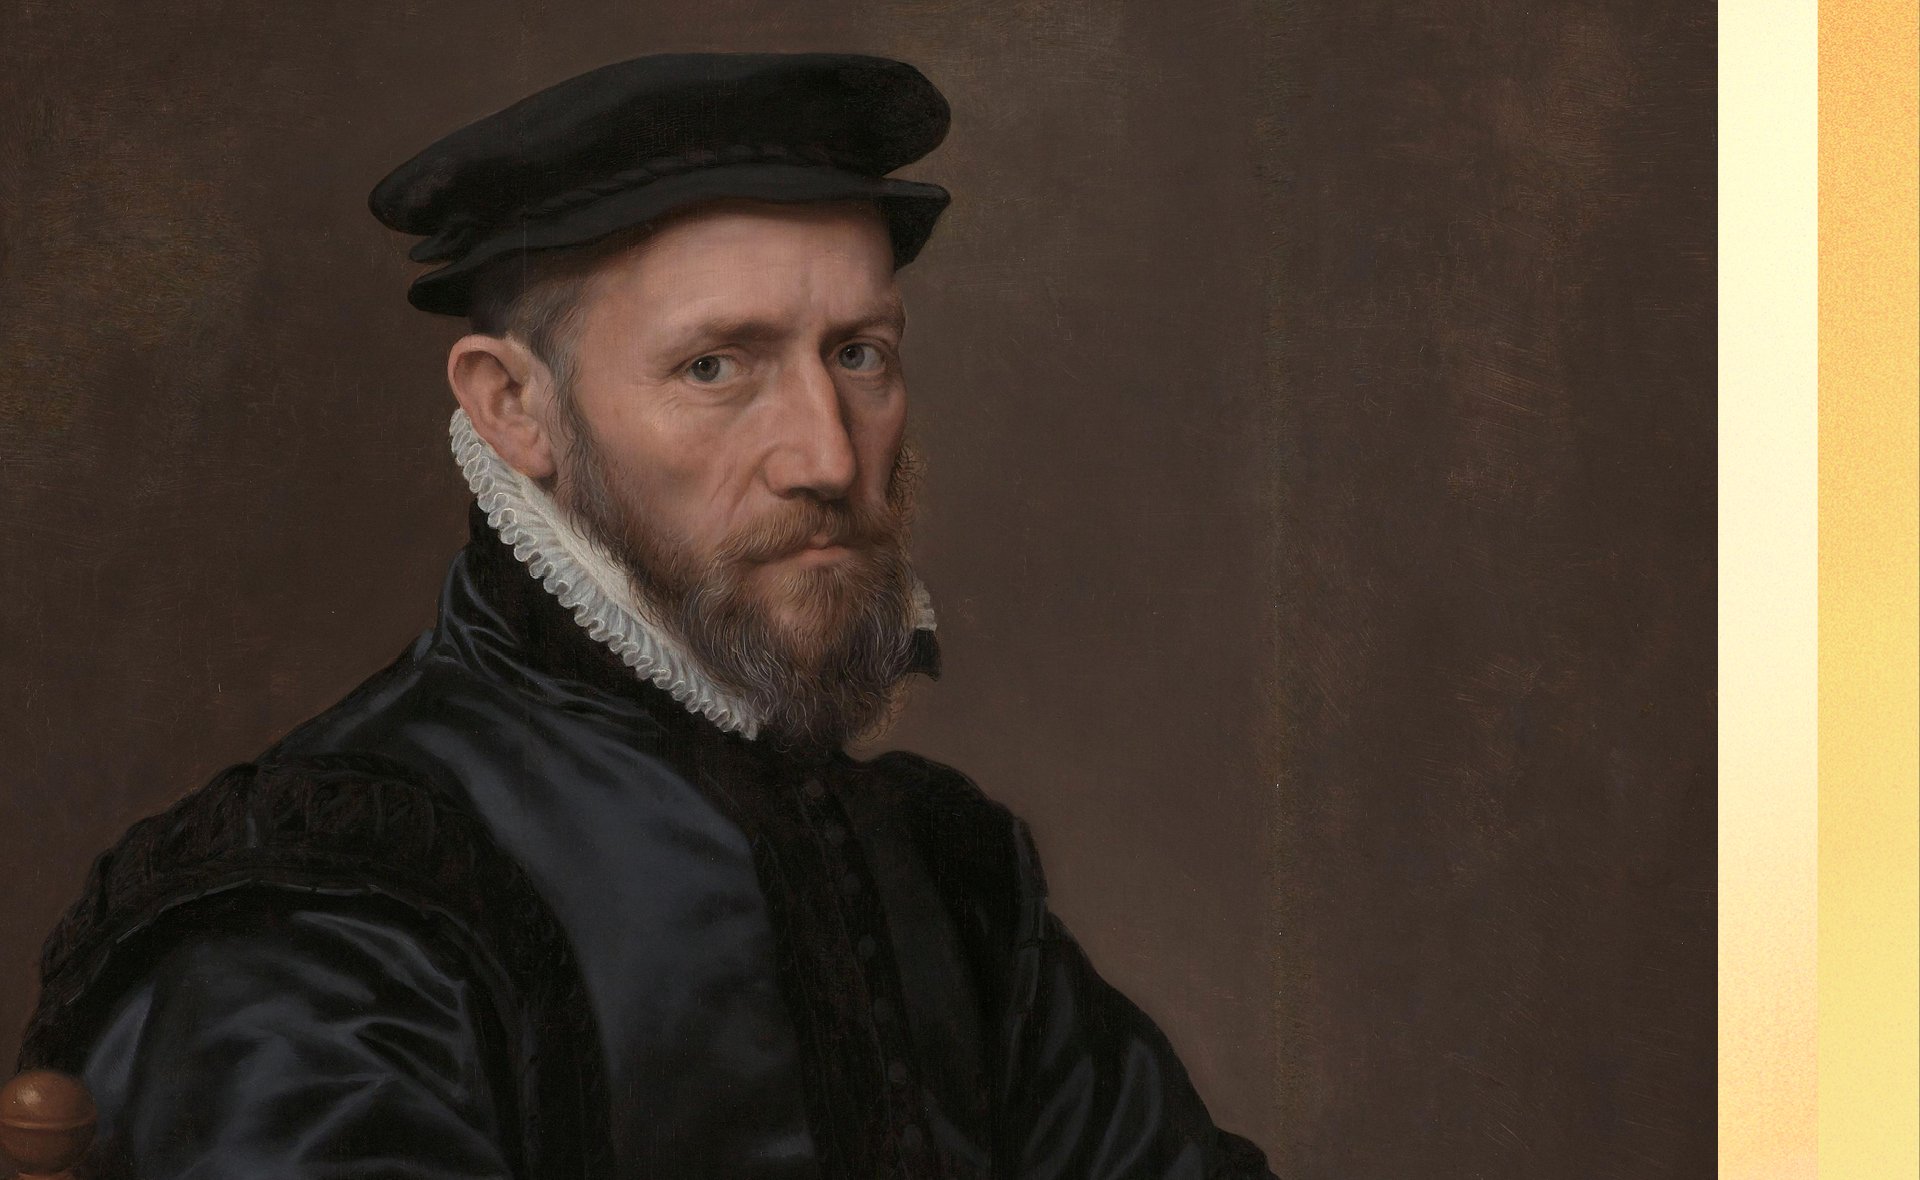 A portrait of The Royal Exchange founder Sir Thomas Gresham (1519 - 1579), by Anthonis Mor